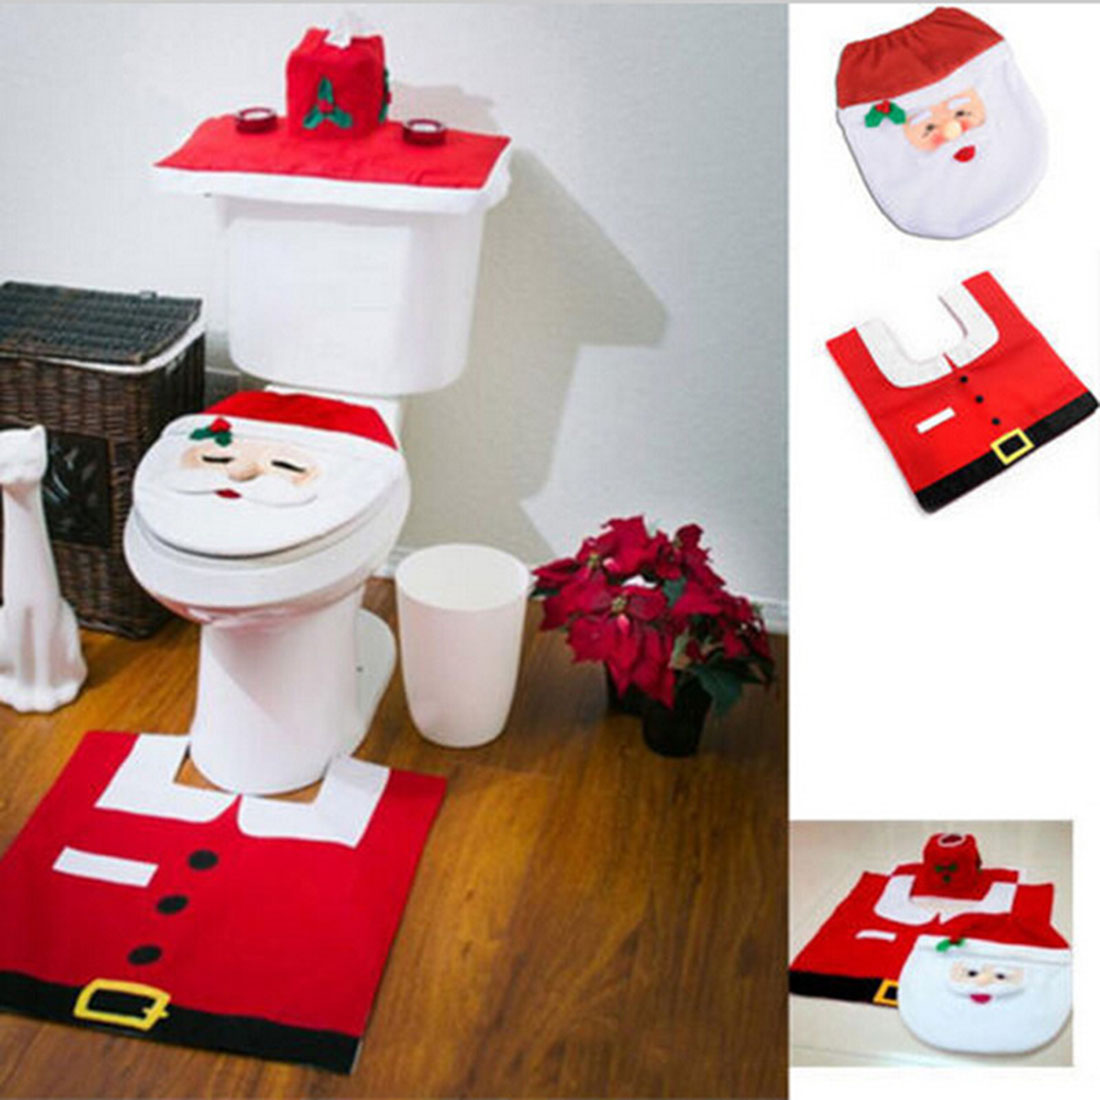 Fashion 3Pc Set Christmas Santa Claus Bathroom Toilet Seats Cover Decoration In Pendant Drop Ornaments From Home Garden On Aliexpress